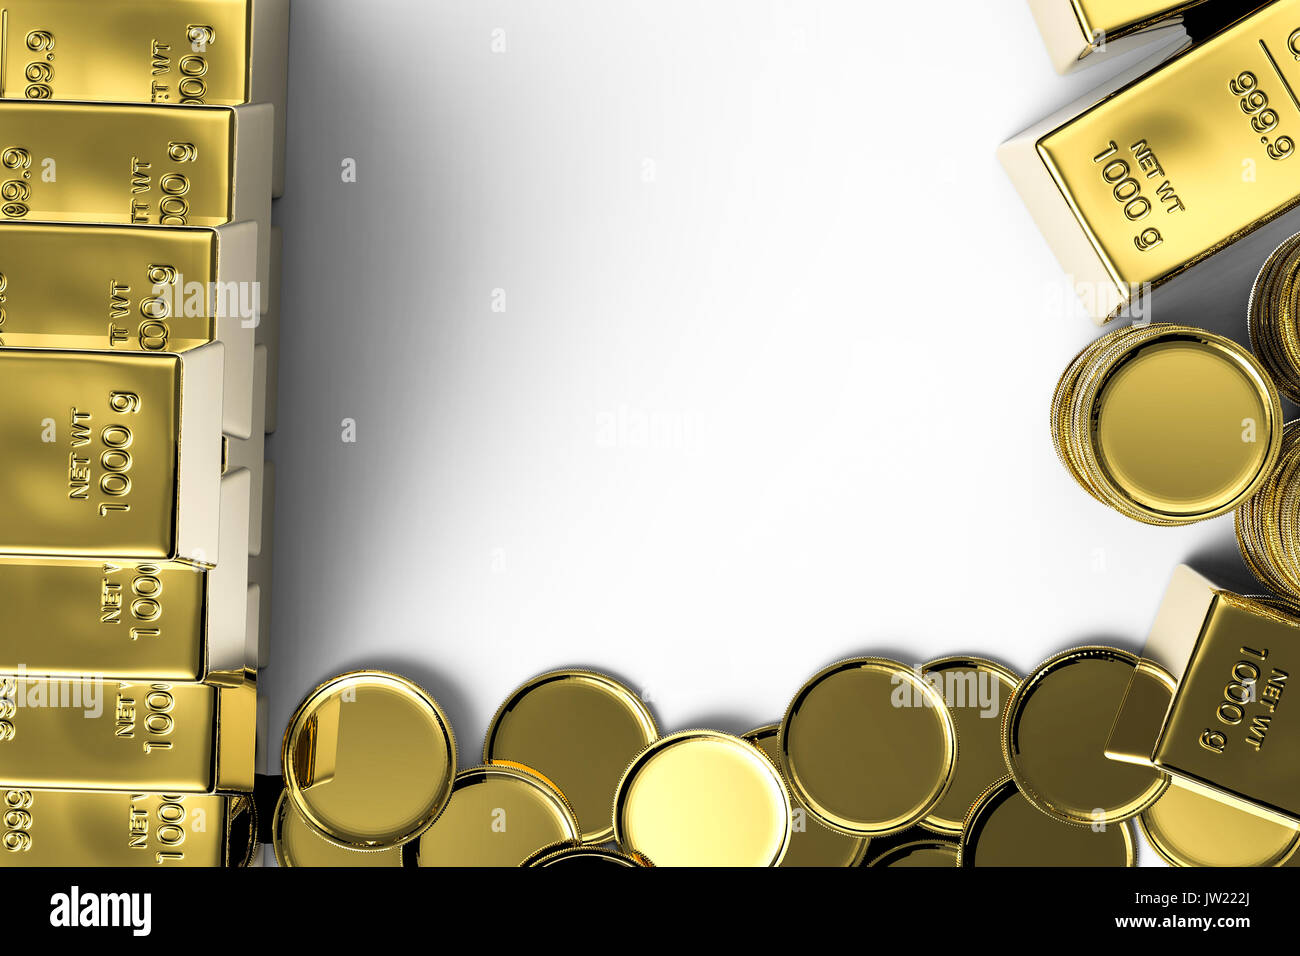 gold coins and gold bars with blank space stock photo 153094890 alamy